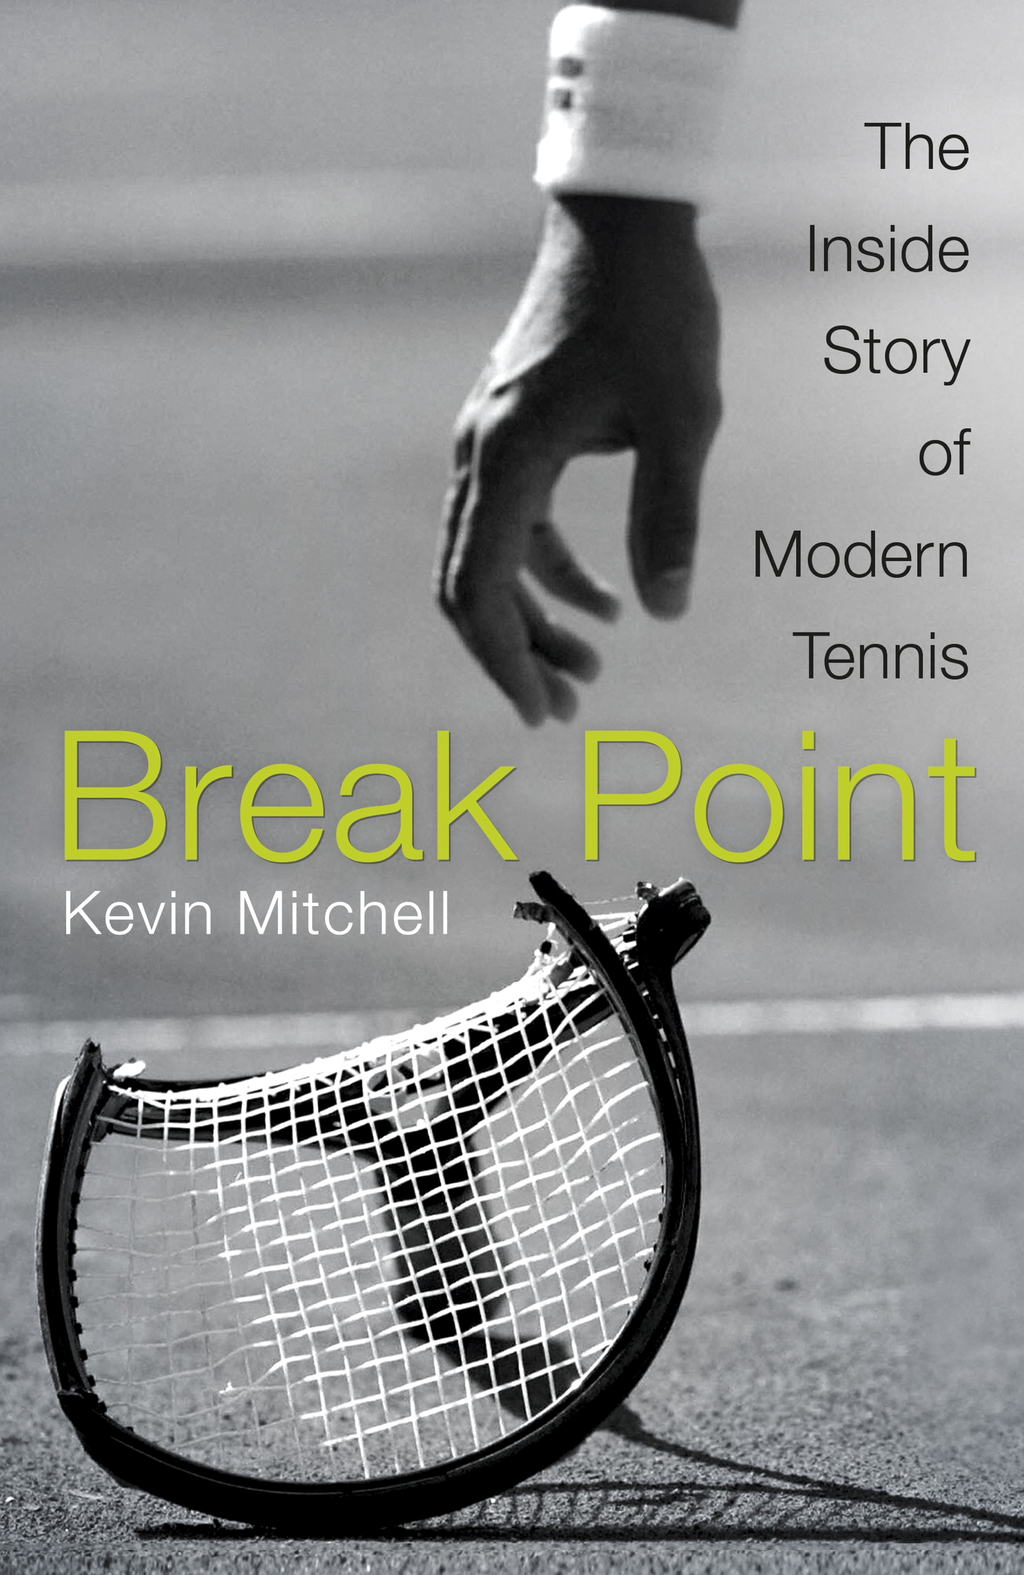 Break Point The Inside Story of Modern Tennis